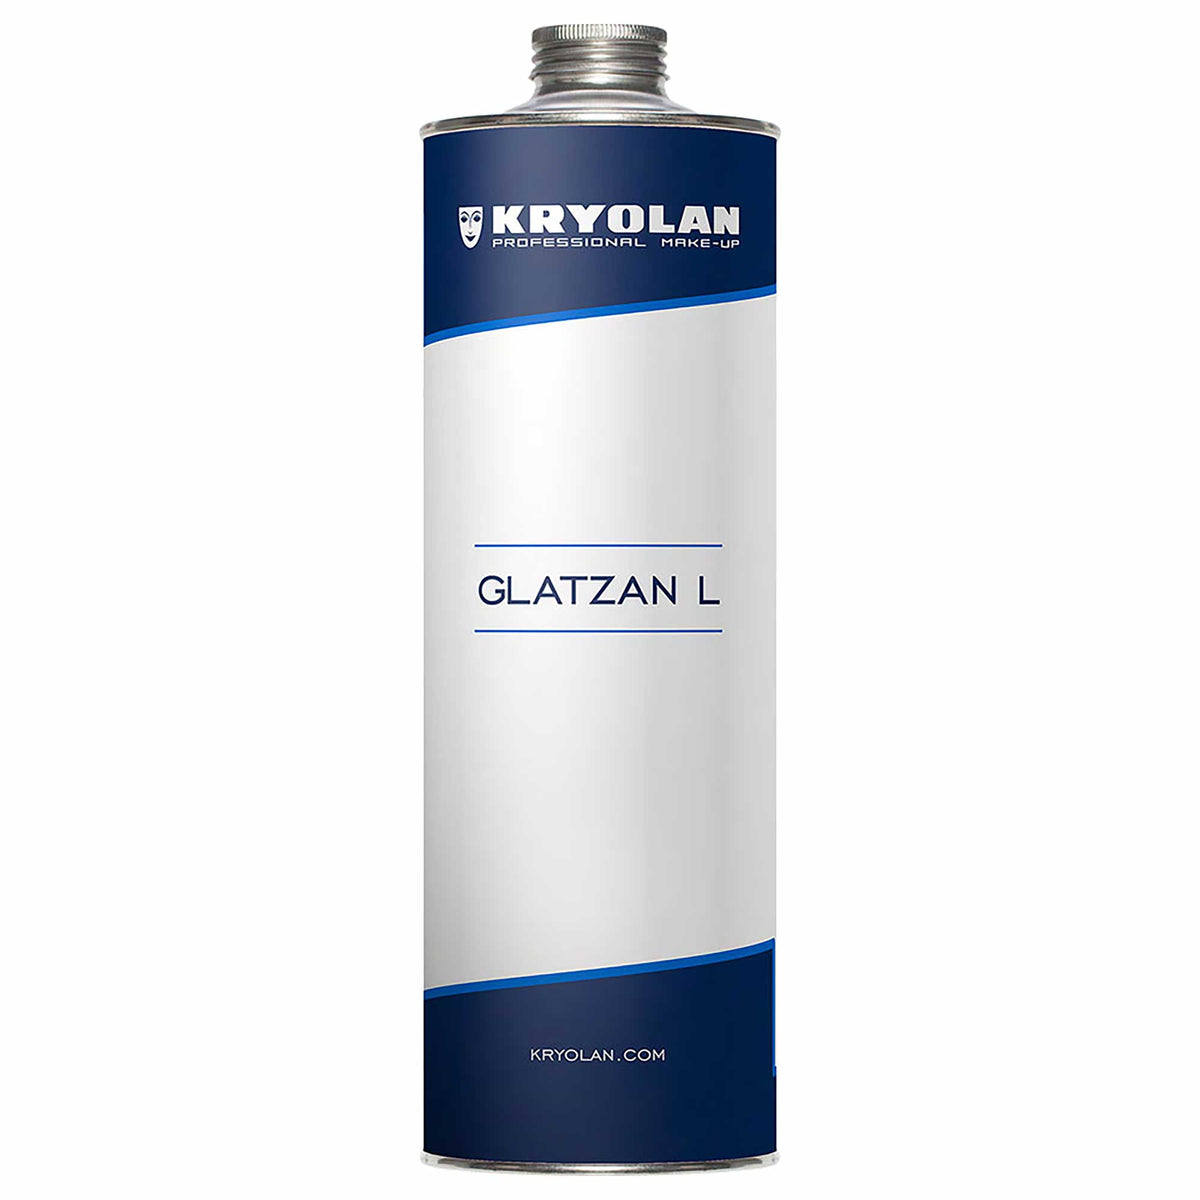 Kryolan Glatzan L - Synthetic Bald Cap Material